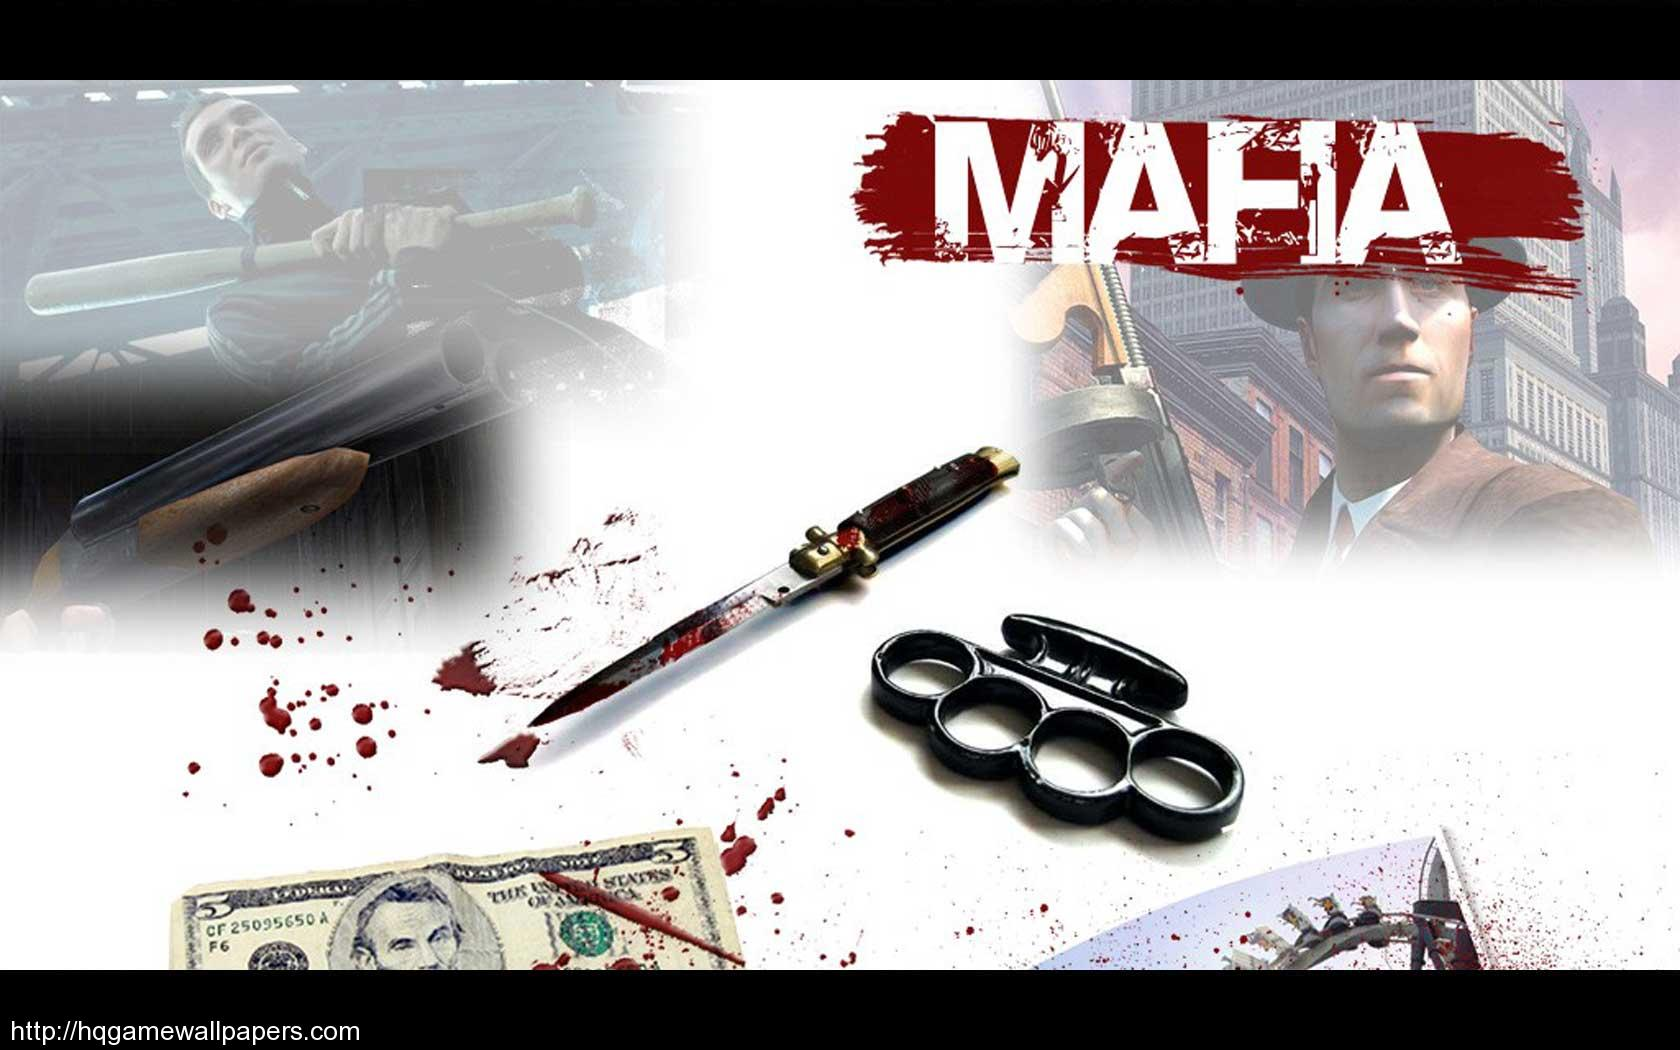 RMD:13 HD Mafia Wallpapers